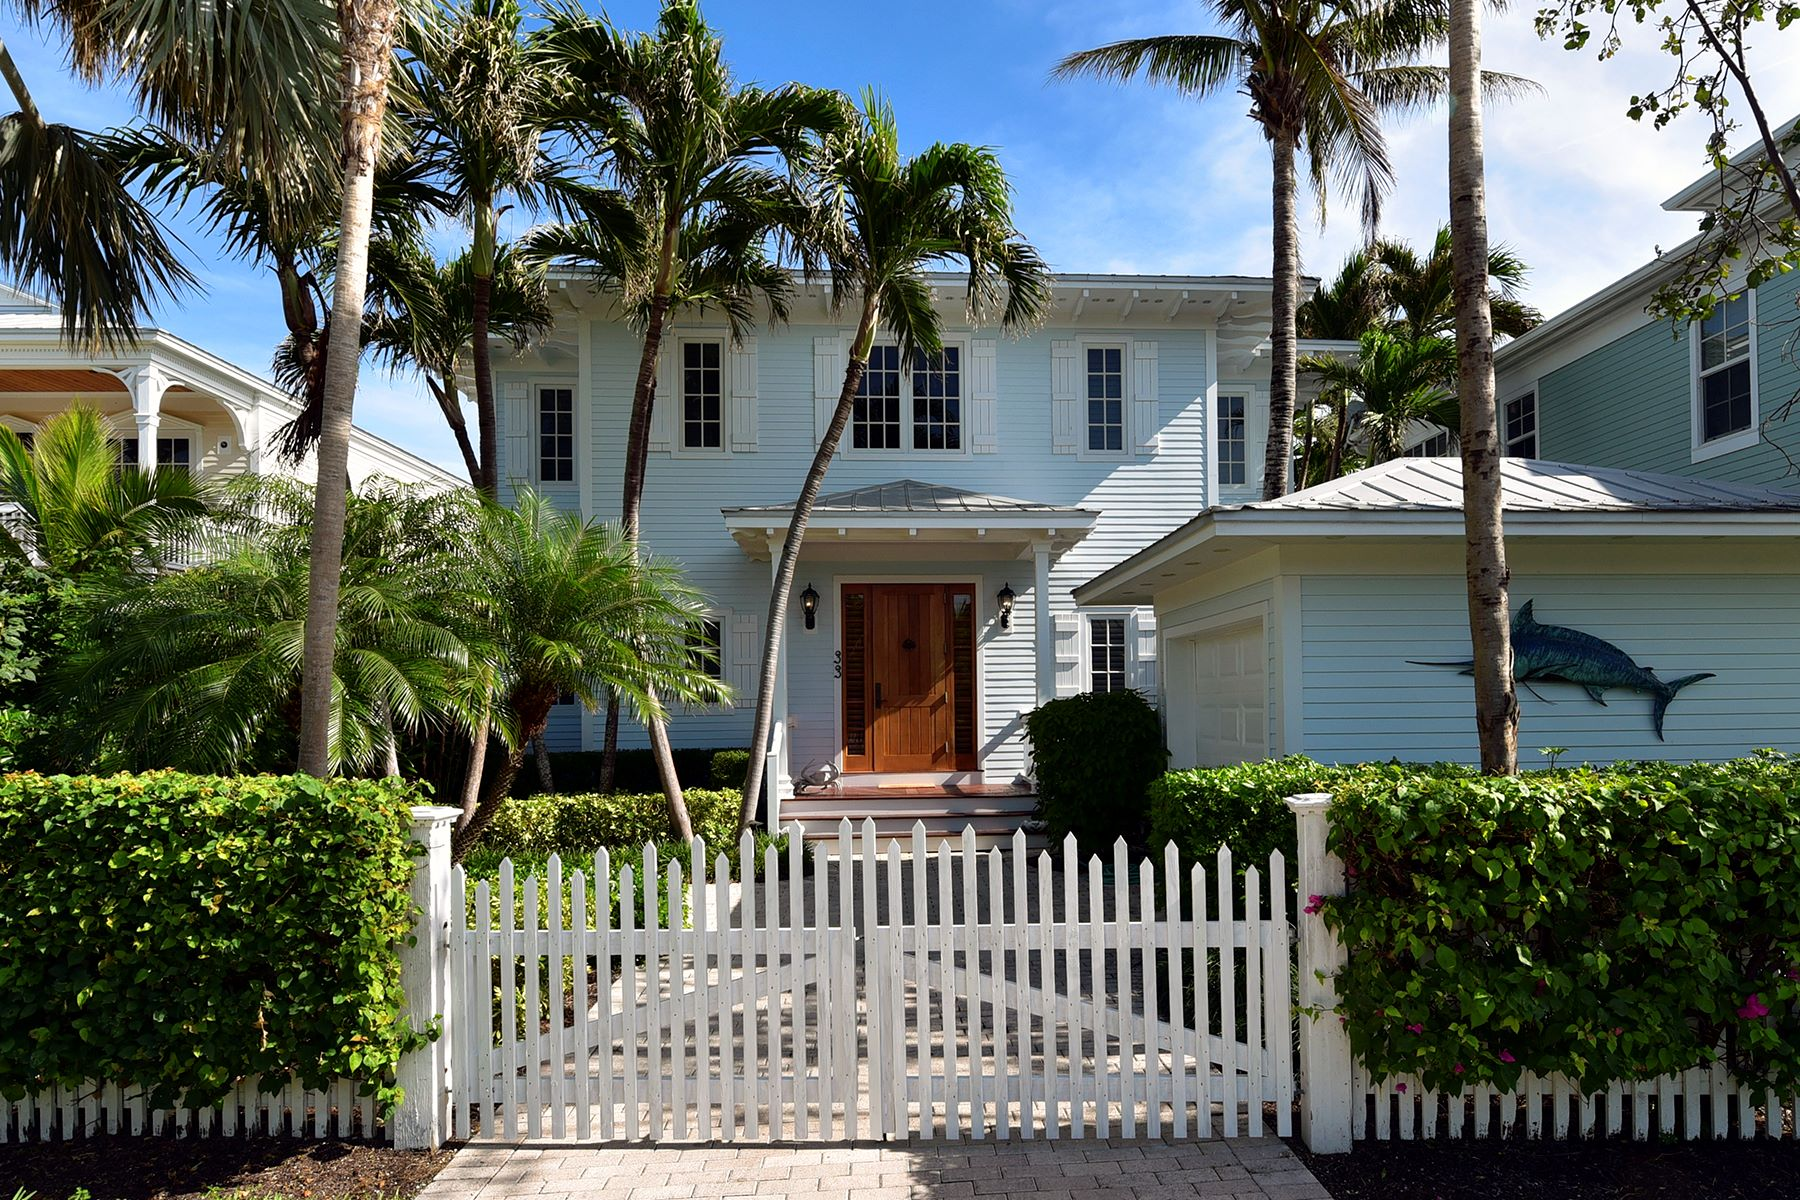 Casa Unifamiliar por un Venta en Waterfront Home on Oversized Lot 33 Sunset Key Drive Key West, Florida 33040 Estados Unidos